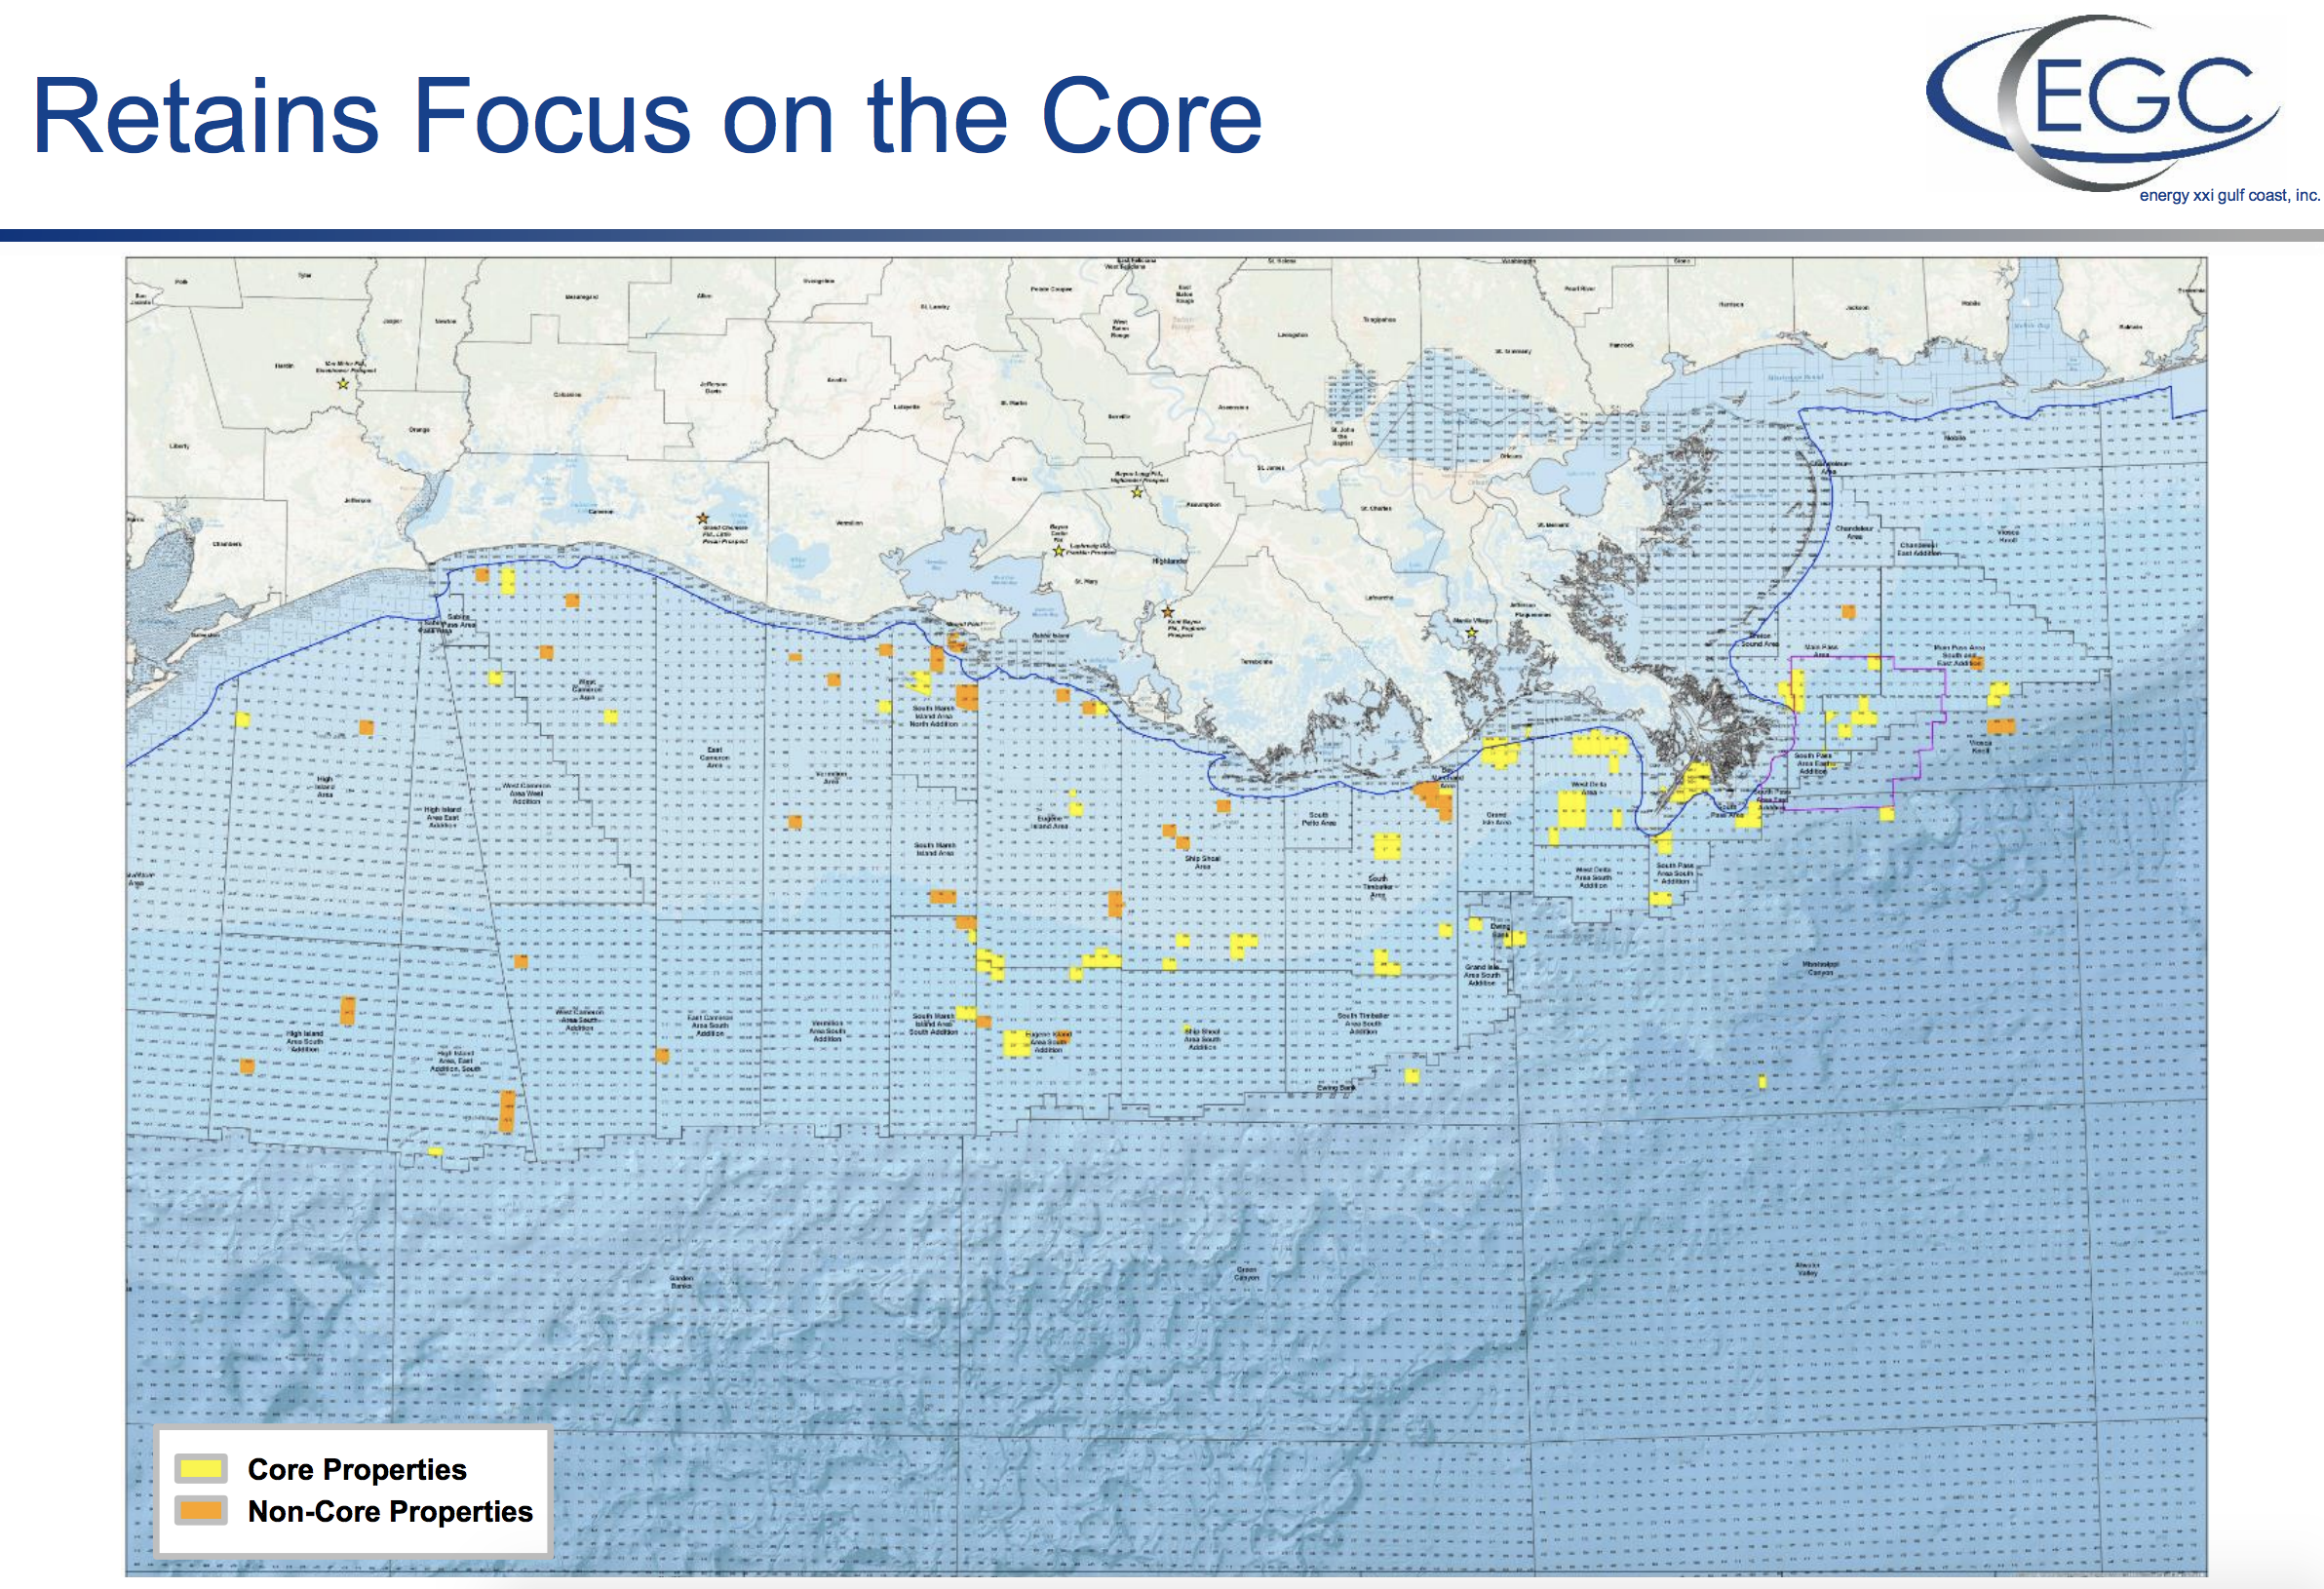 Energy XXI - Retain Focus On The Core (Source: Energy XXI First-Quarter Earnings Call Presentation)